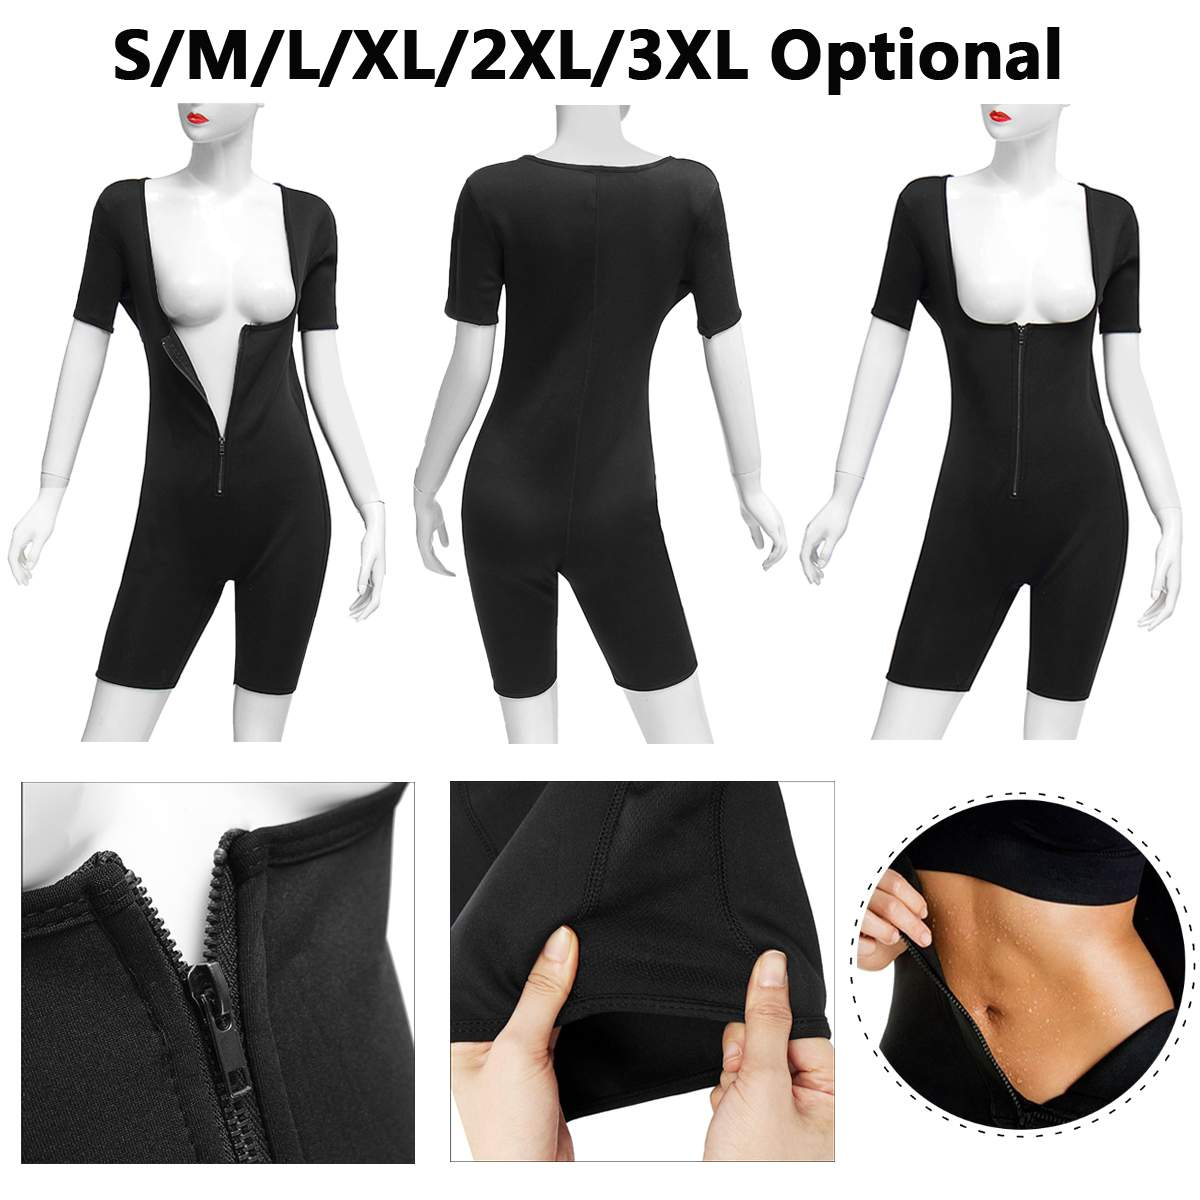 Sweat Neoprene Women Full Body Shaper Bodysuit Shapewear Suit Regular Size Zip